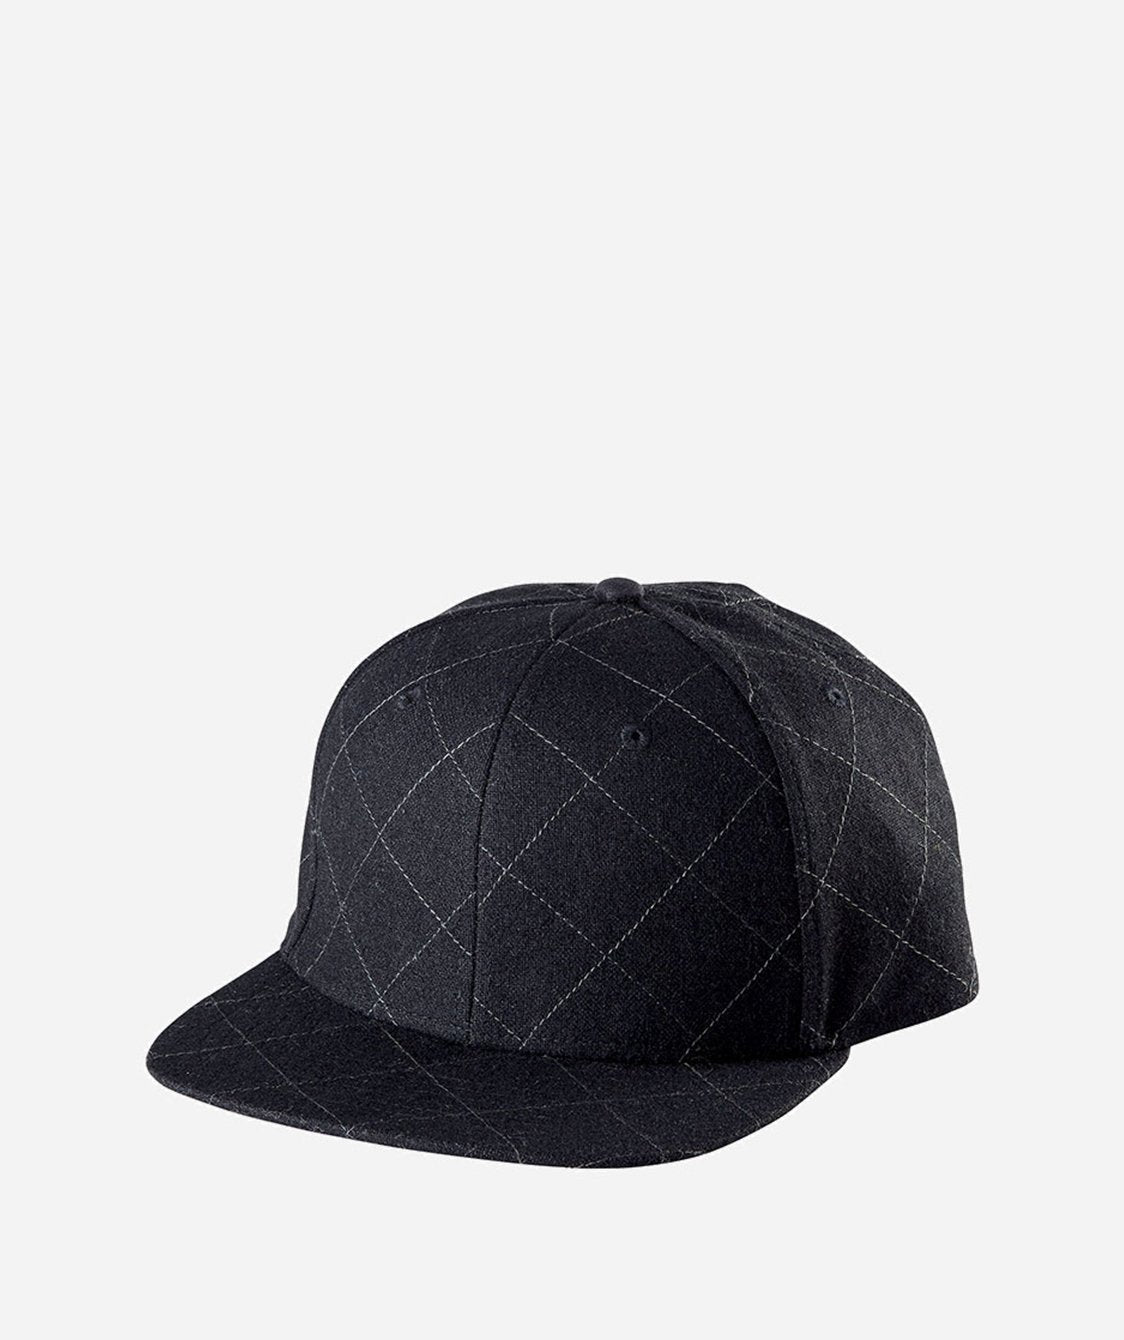 7269f1baf50 Mens O S Qiuilted Wool Cap With Adjustable Back (SDH2047) - San ...